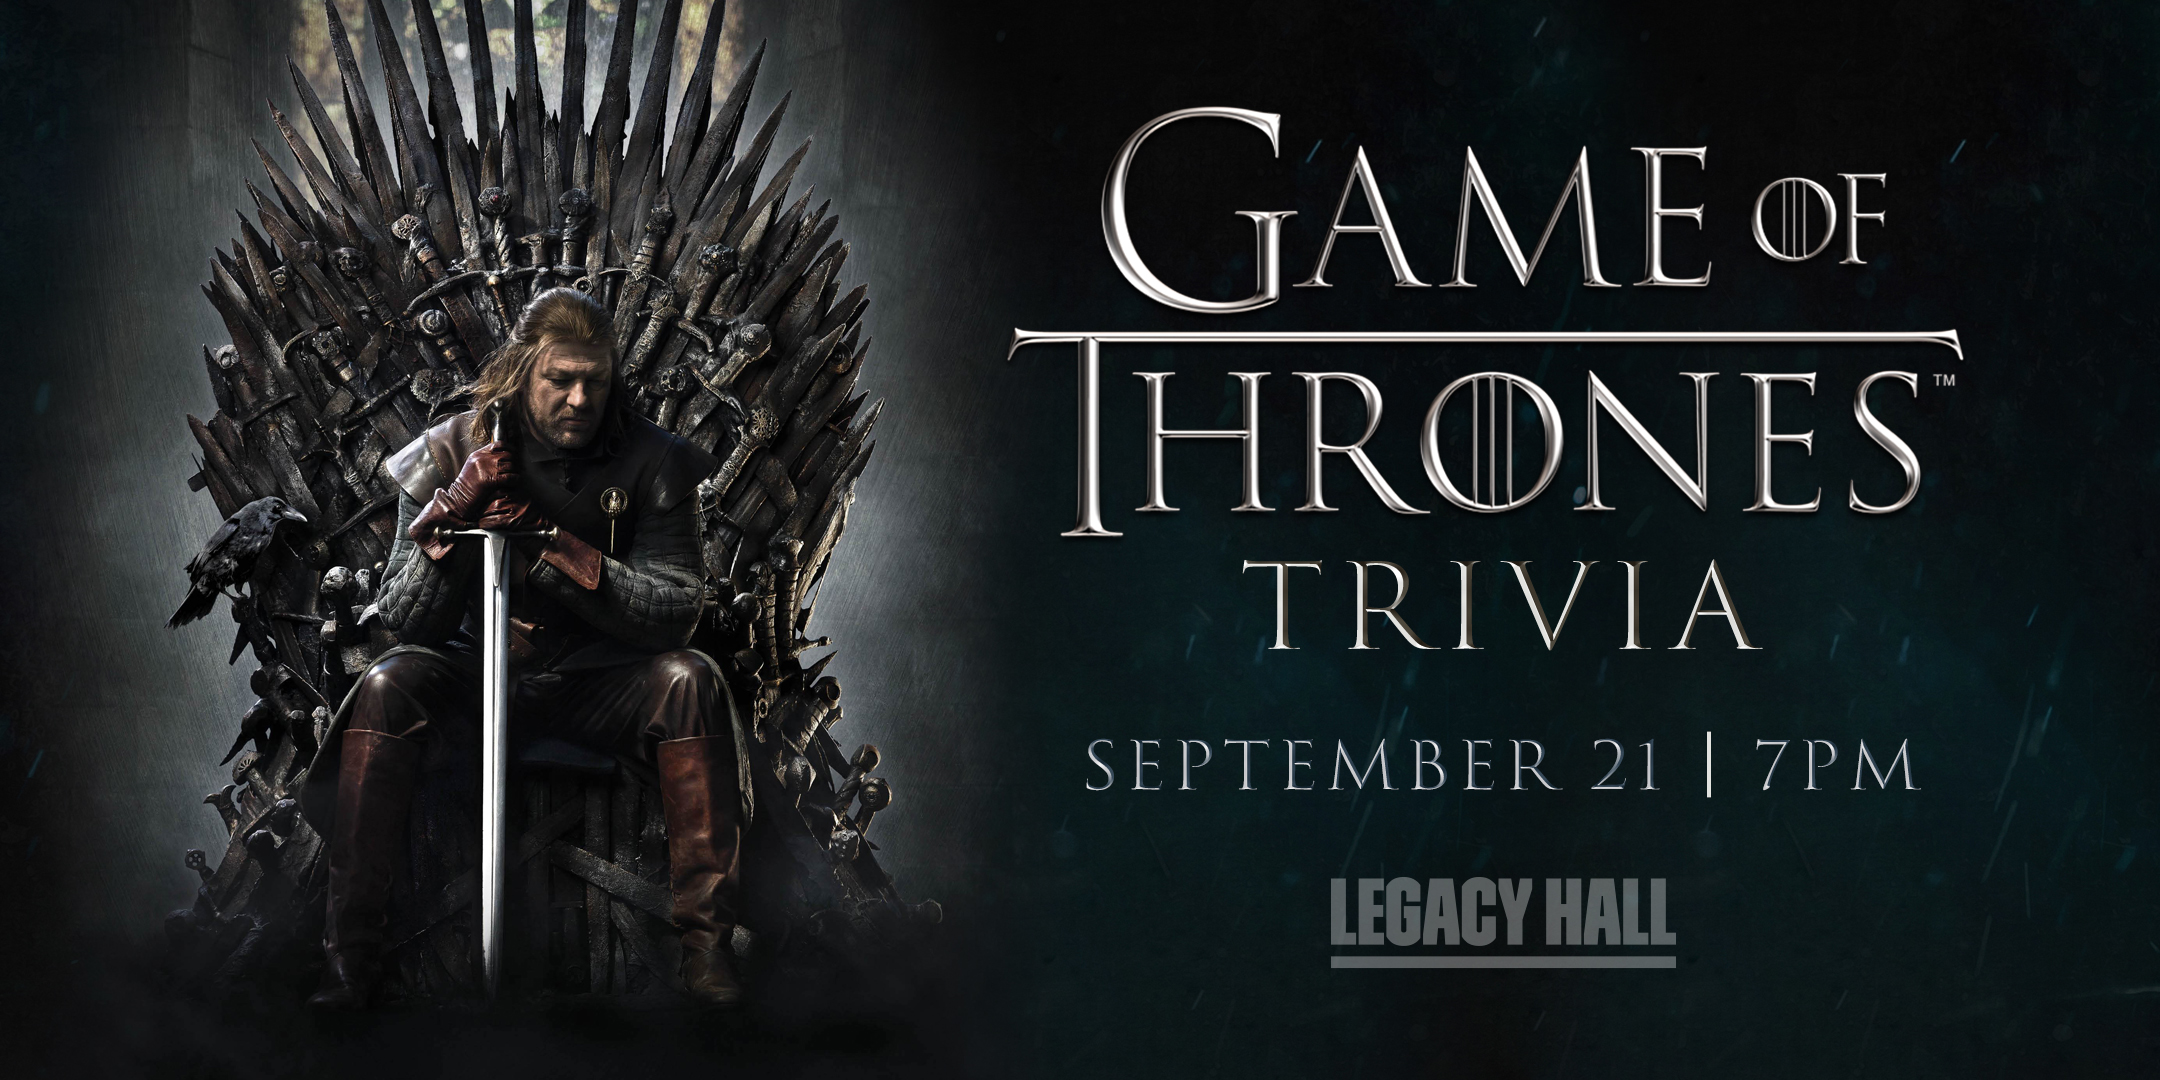 Promo image of Game of Thrones Trivia